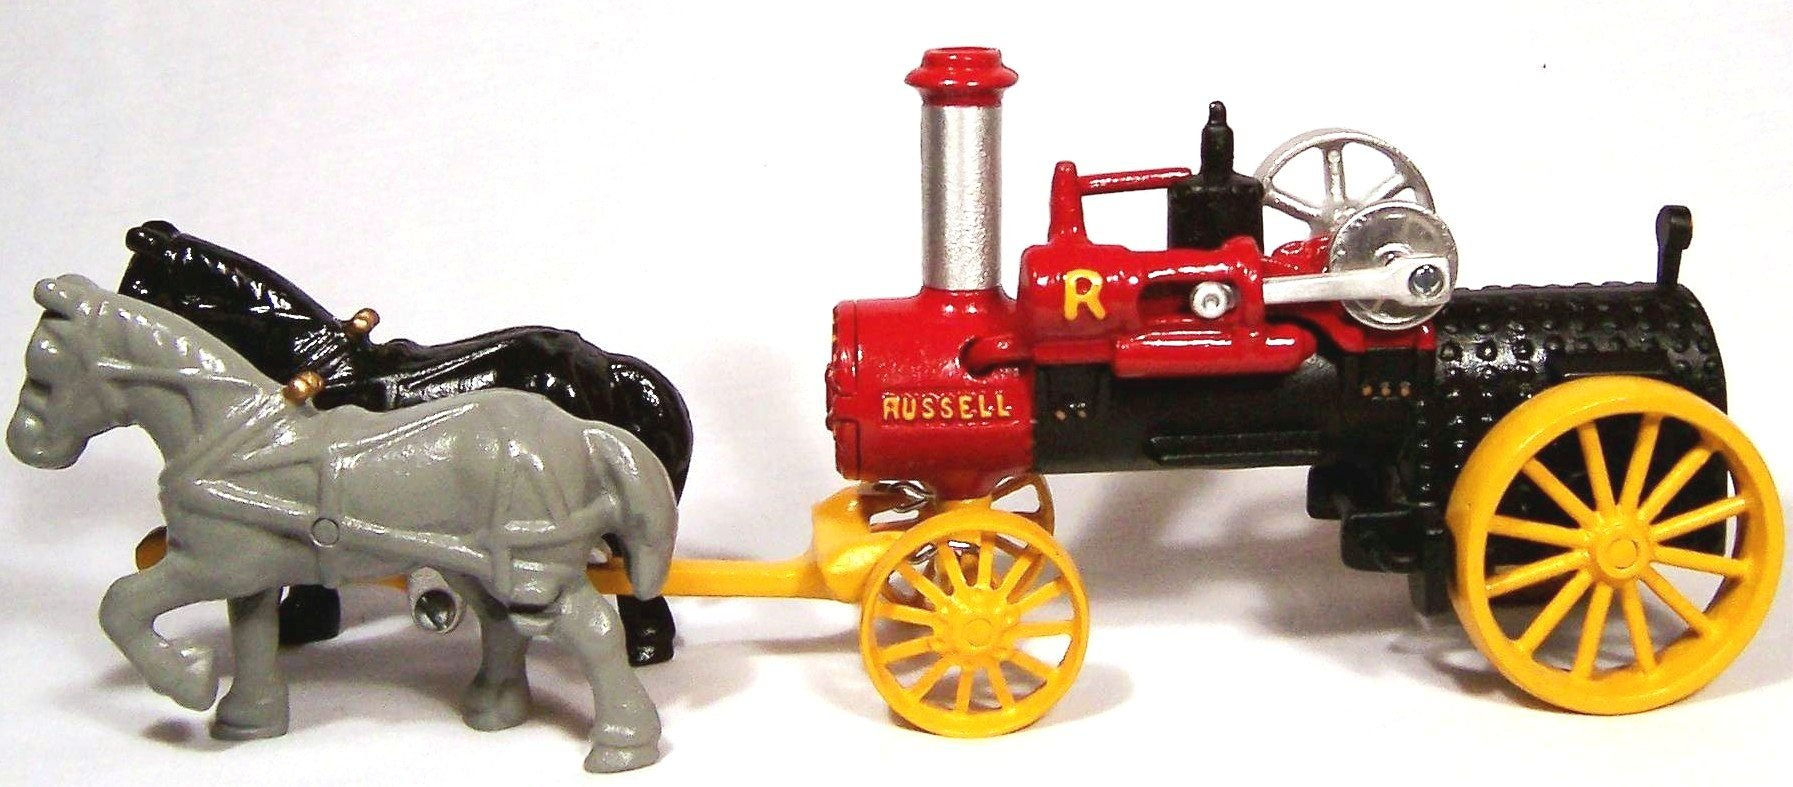 Portable Russel Model Toy